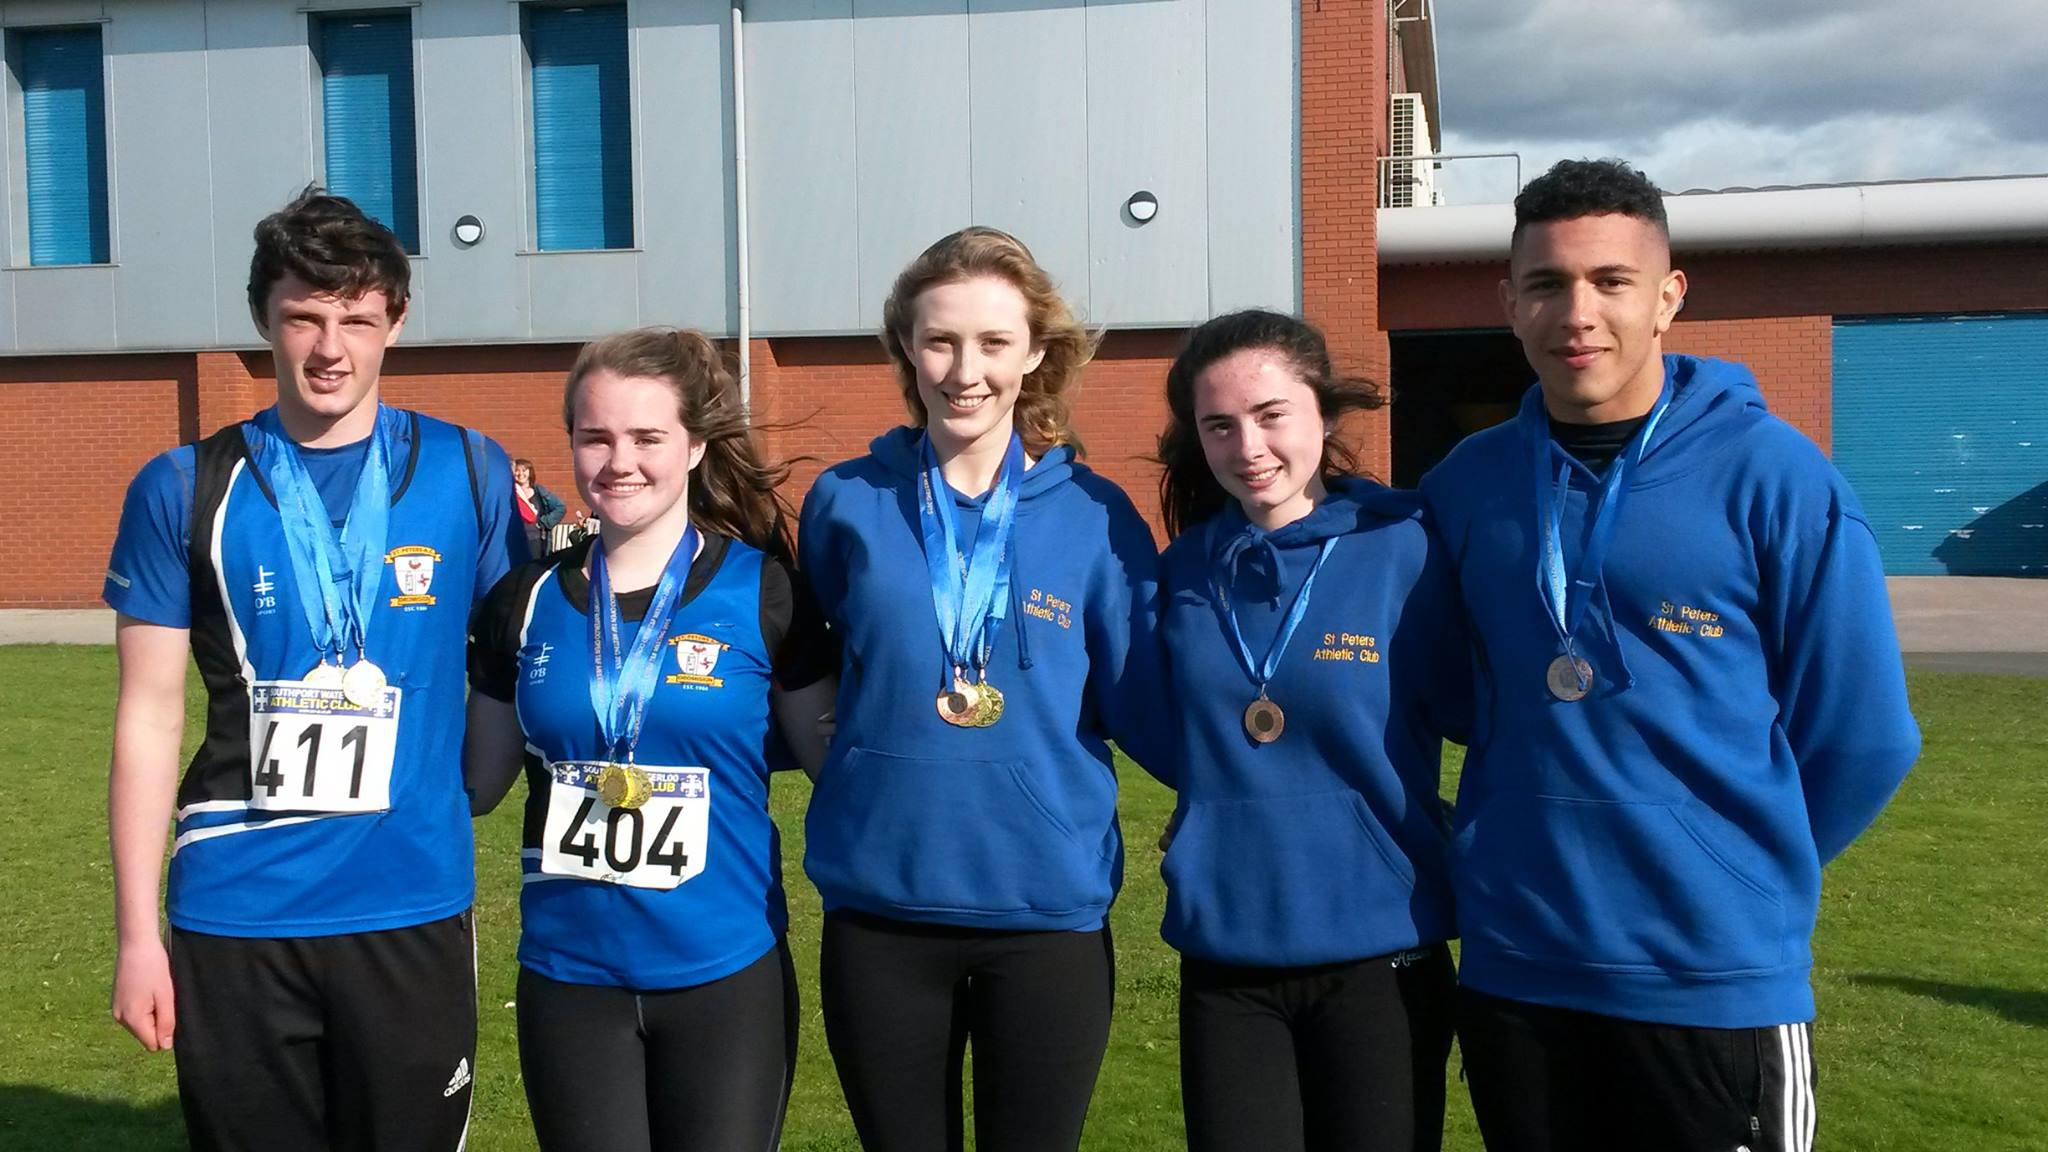 St Peter's AC teenage athletes at Southport Waterloo AC Open Meet (Liverpool, September 2015)